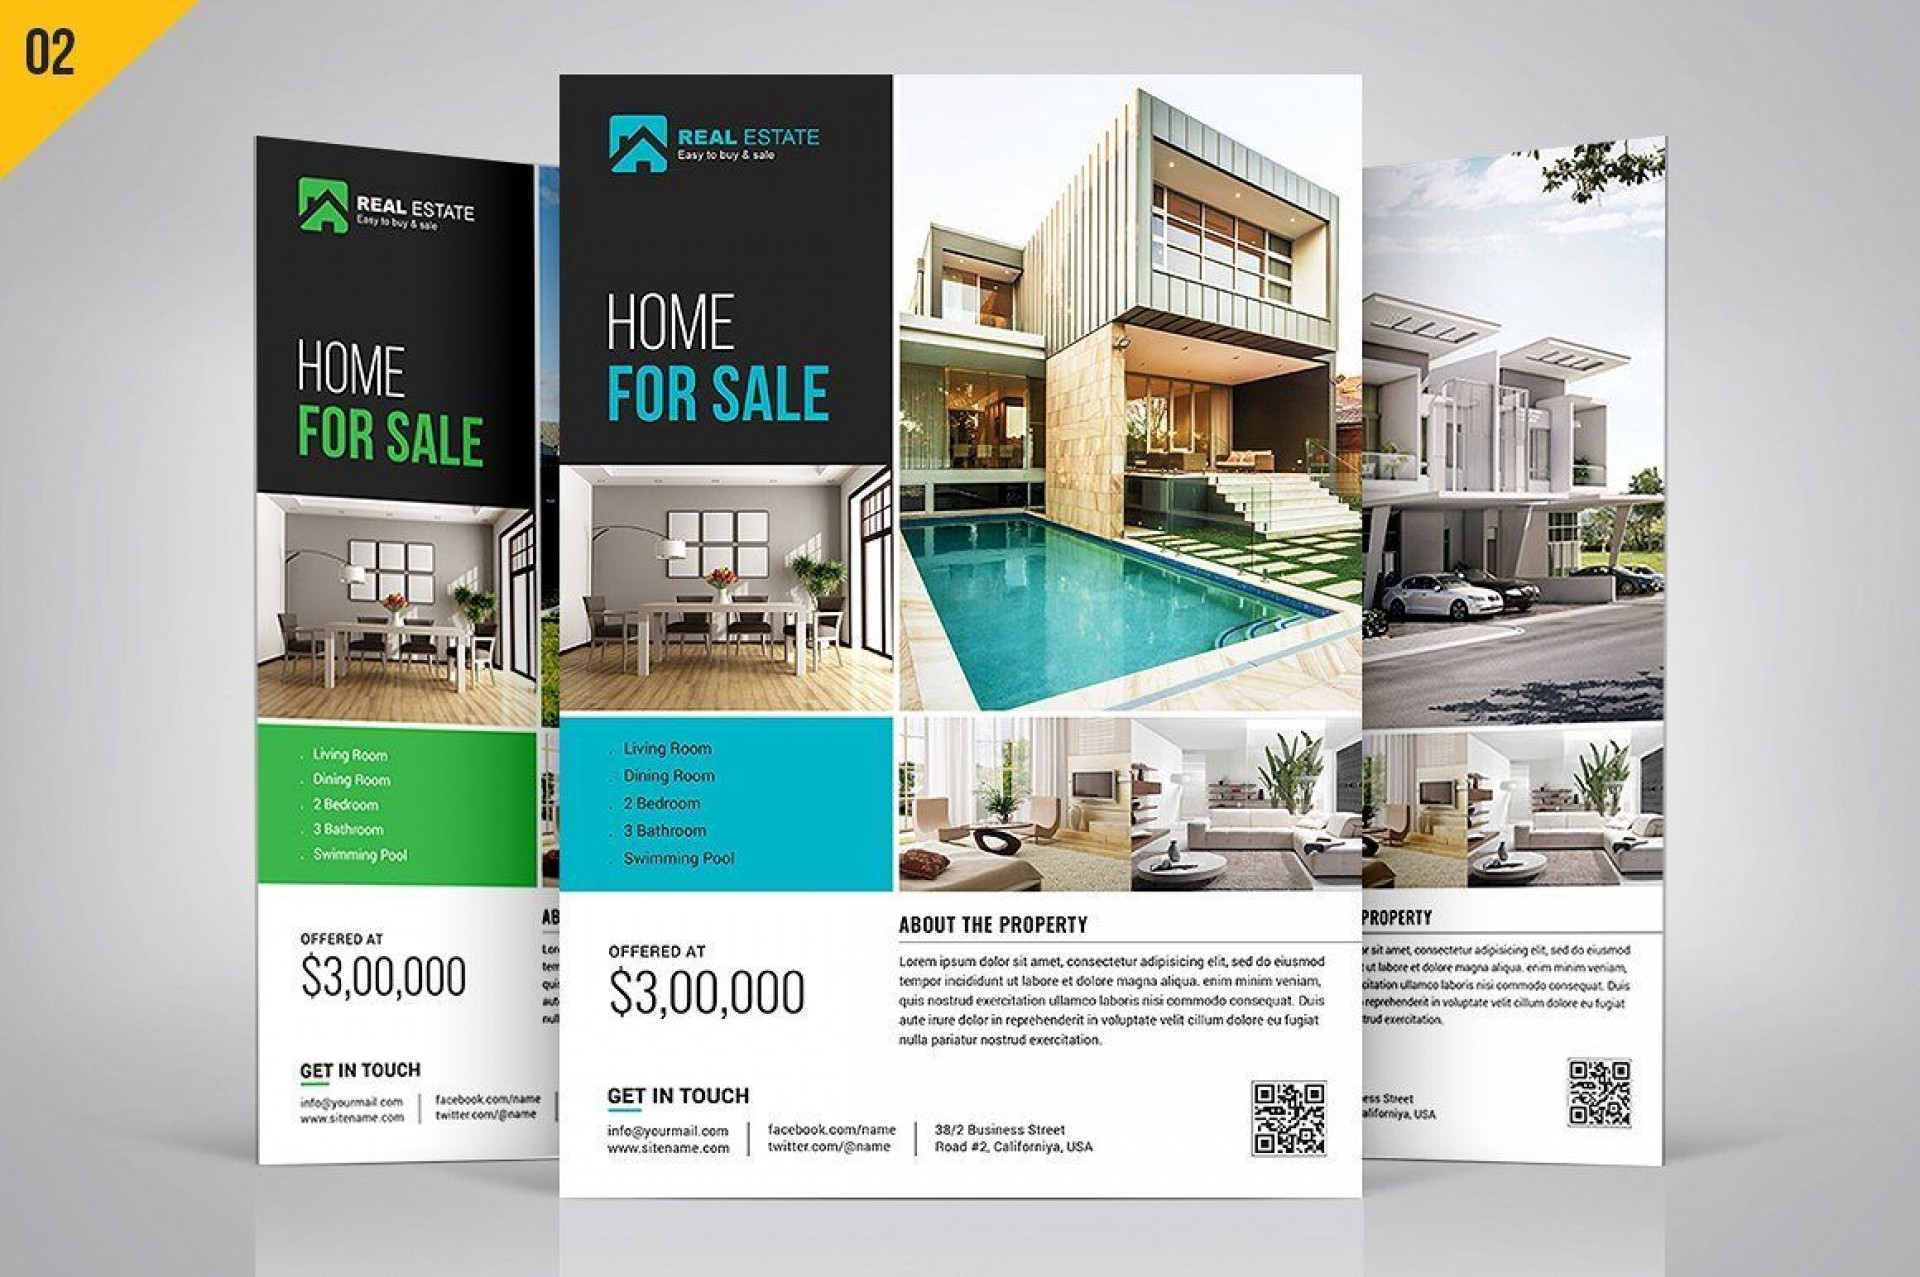 004 Phenomenal Real Estate Ad Template Sample  Templates Commercial Free Listing Flyer Instagram1920